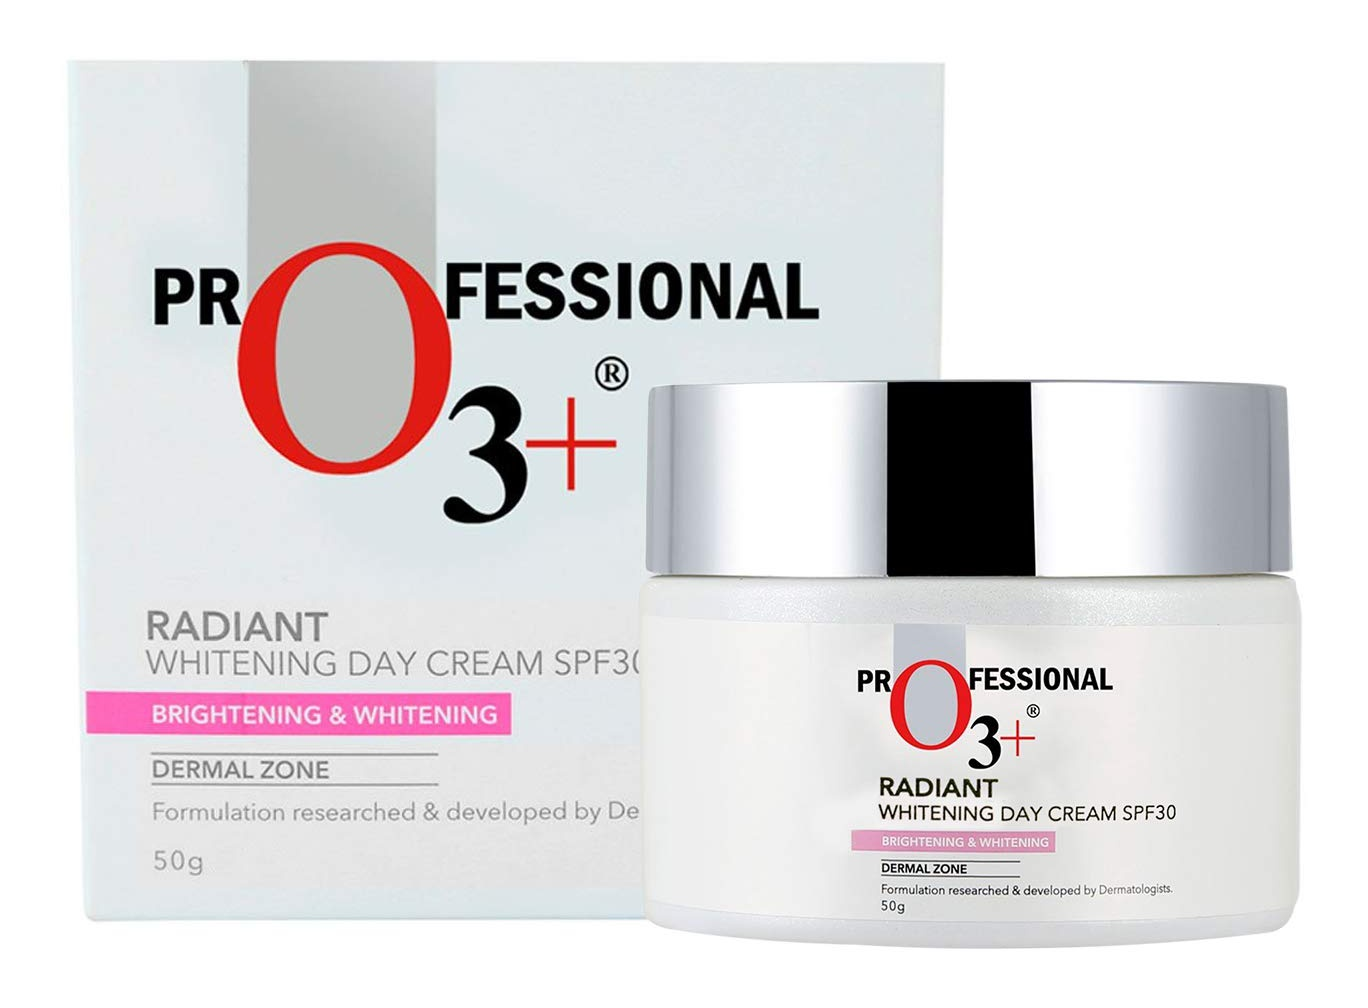 o3+ Radiant Whitening Day Cream